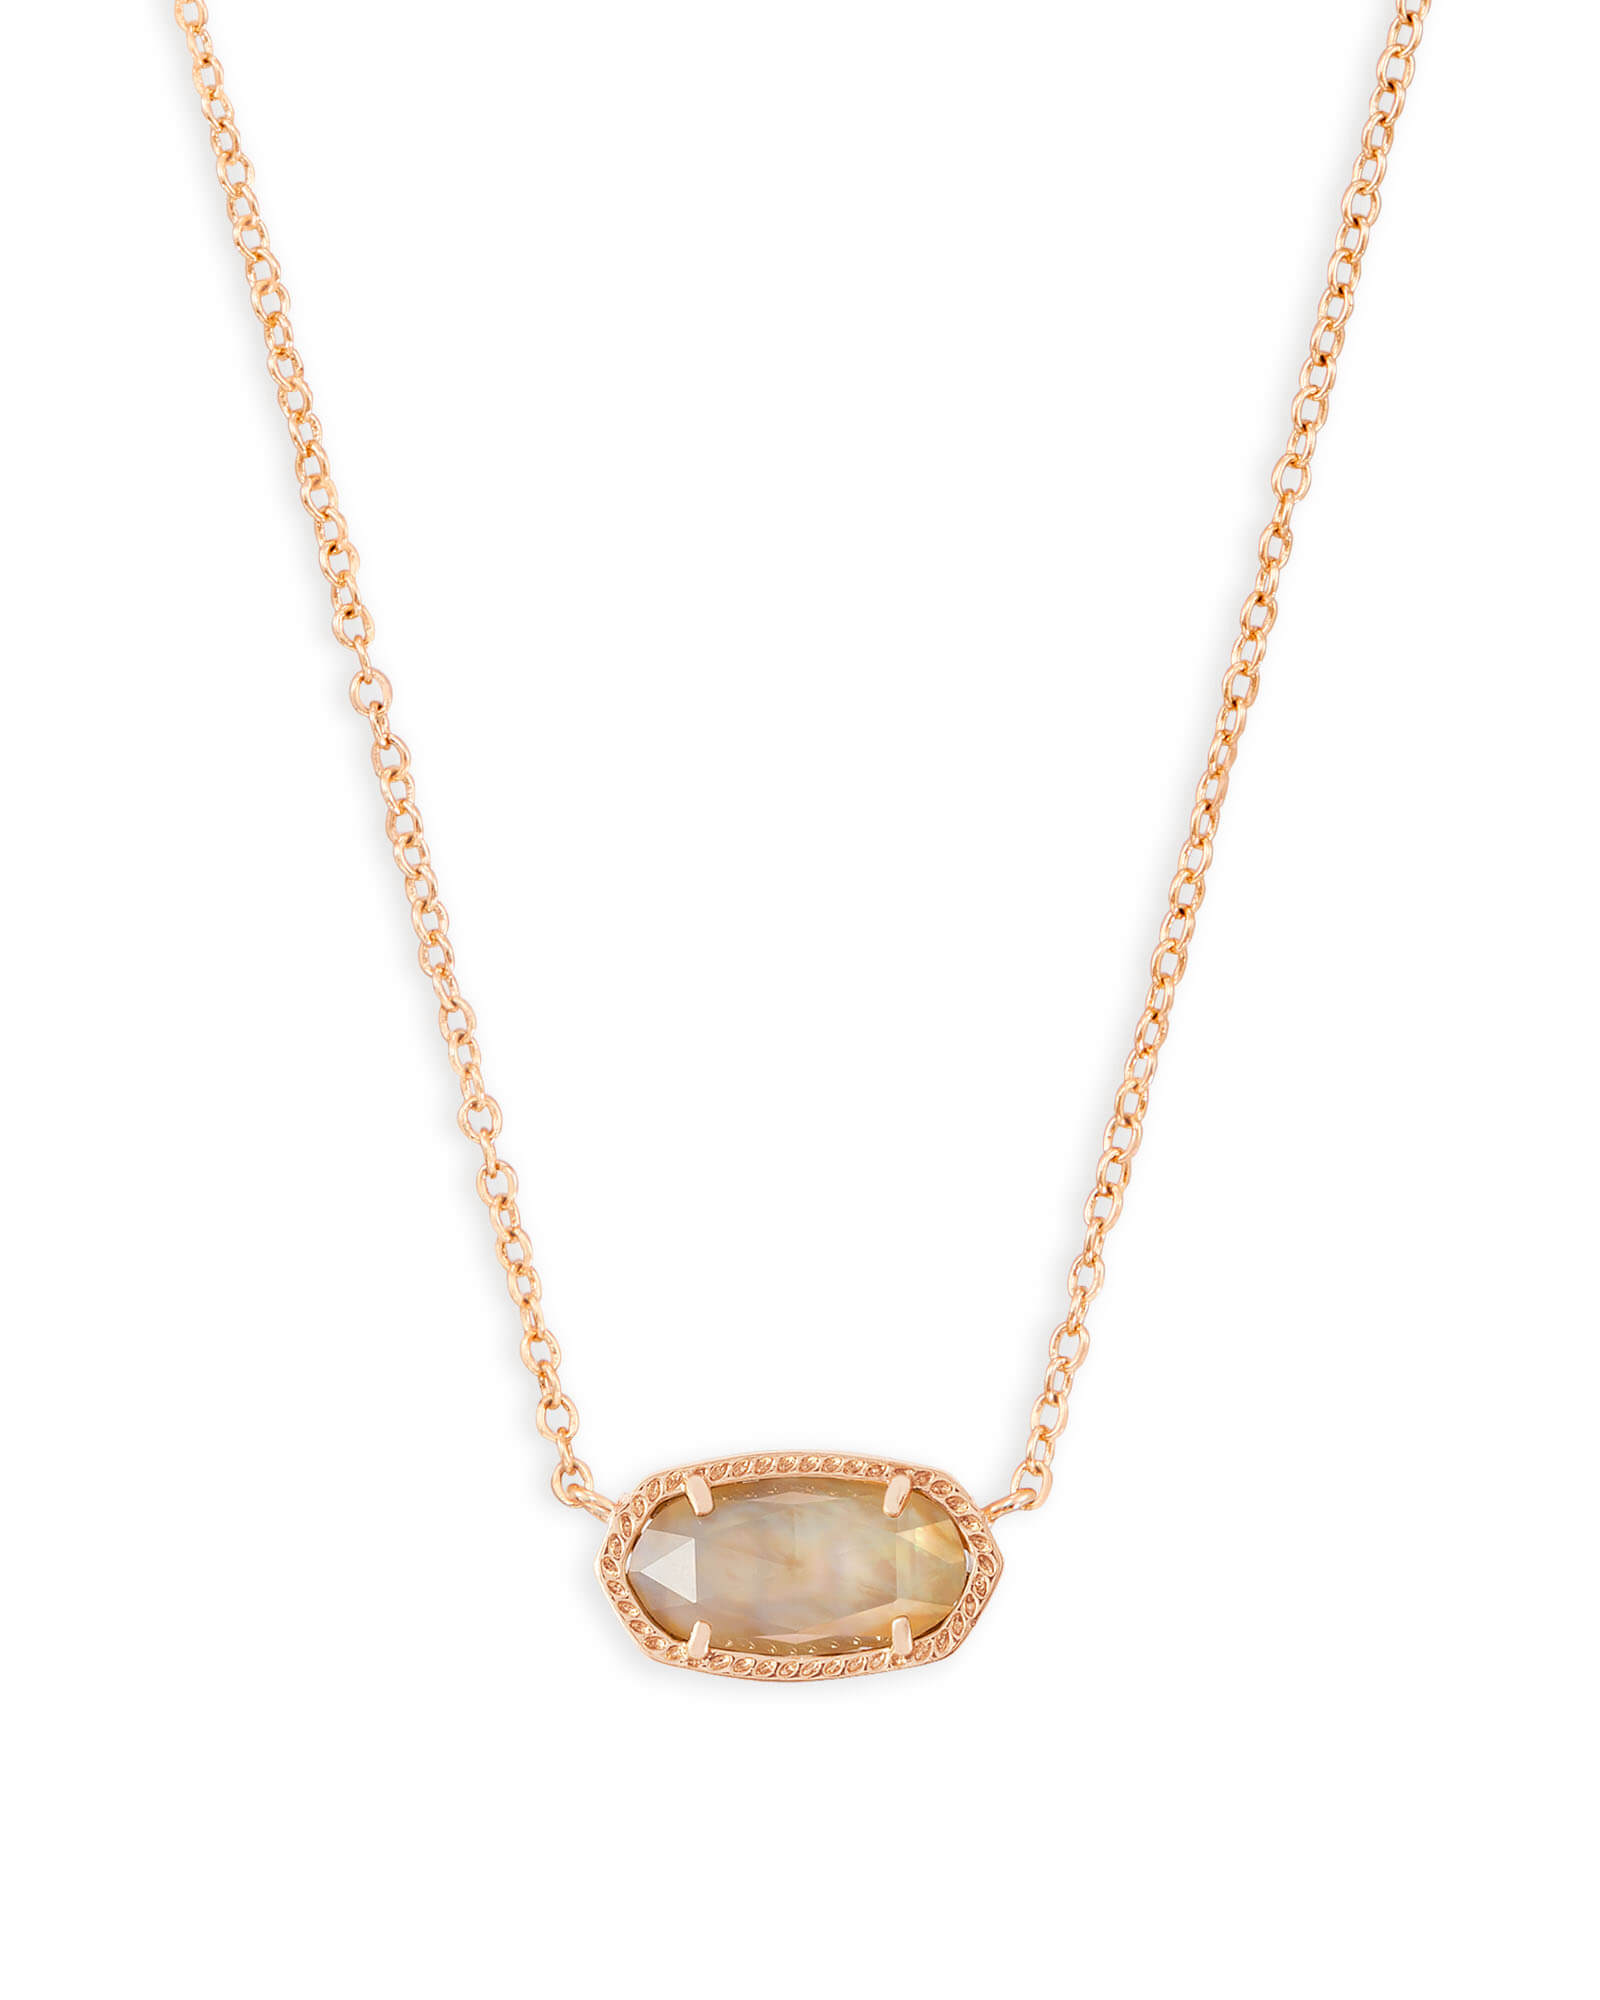 Elisa Rose Gold Pendant Necklace in Brown Mother of Pearl